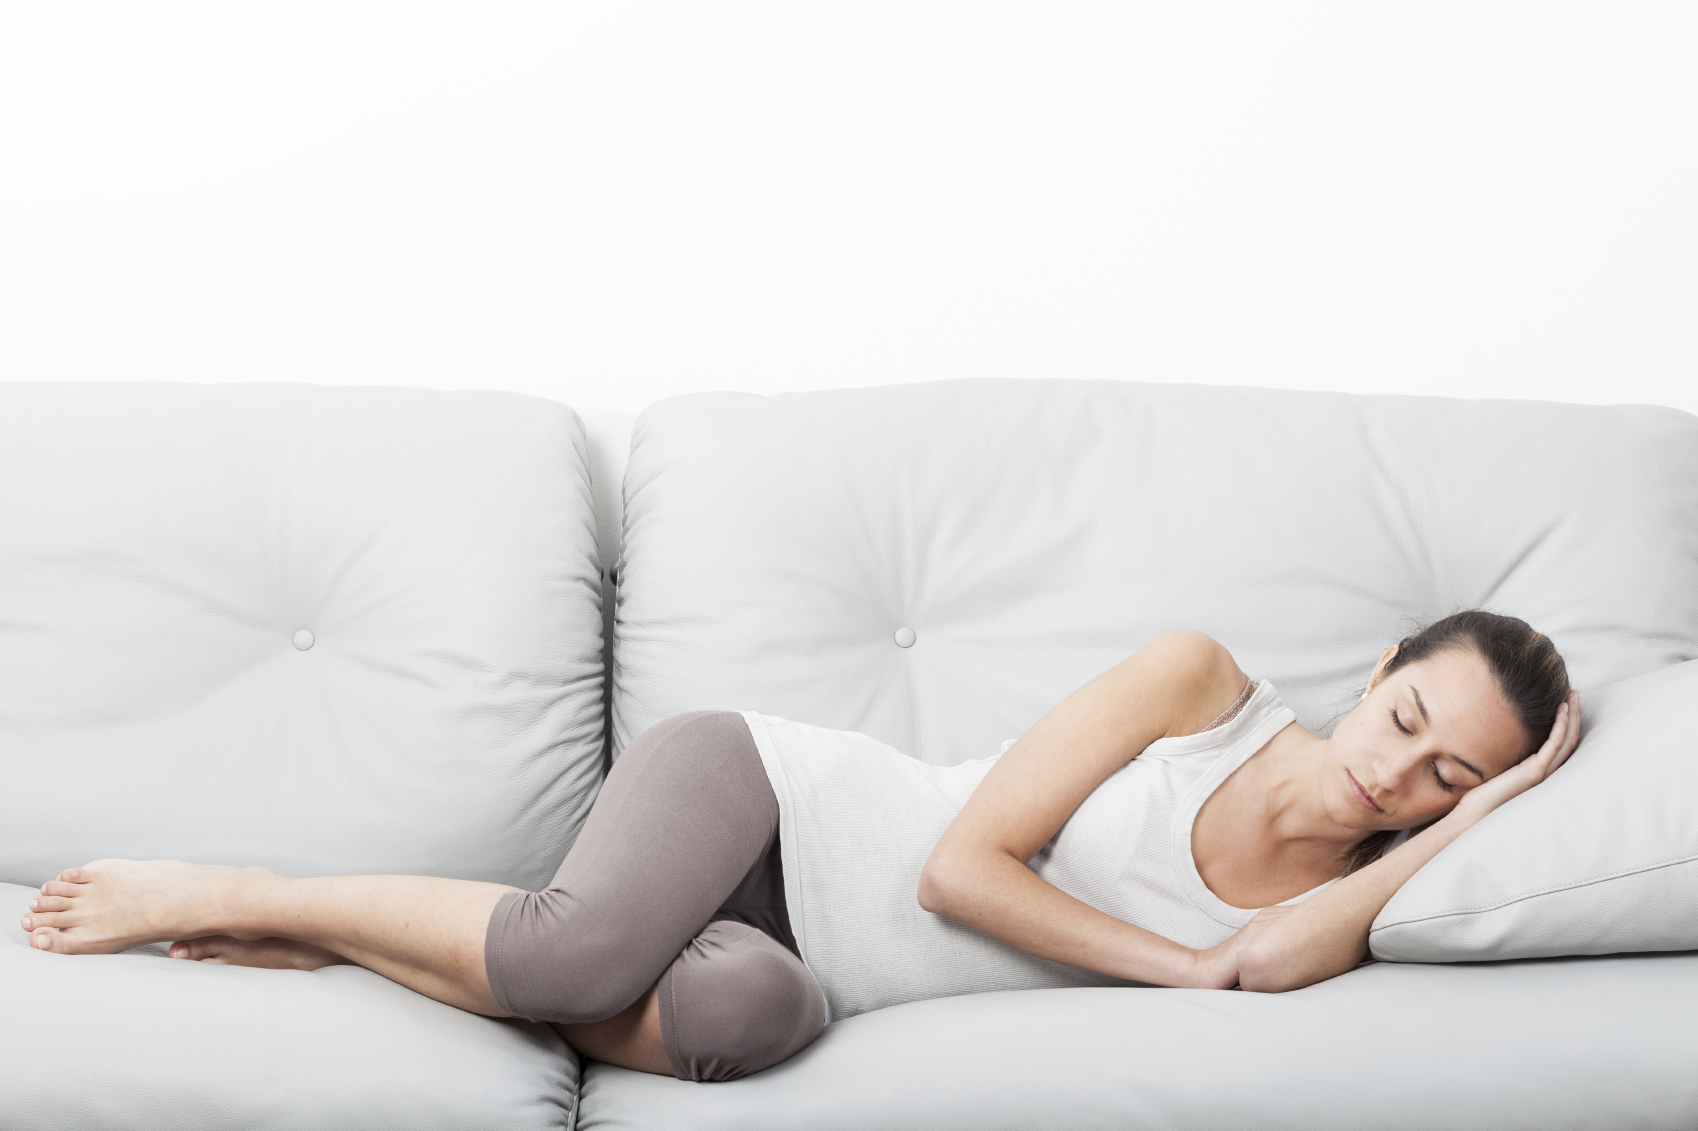 A woman sleeping on a couch. (stock image)